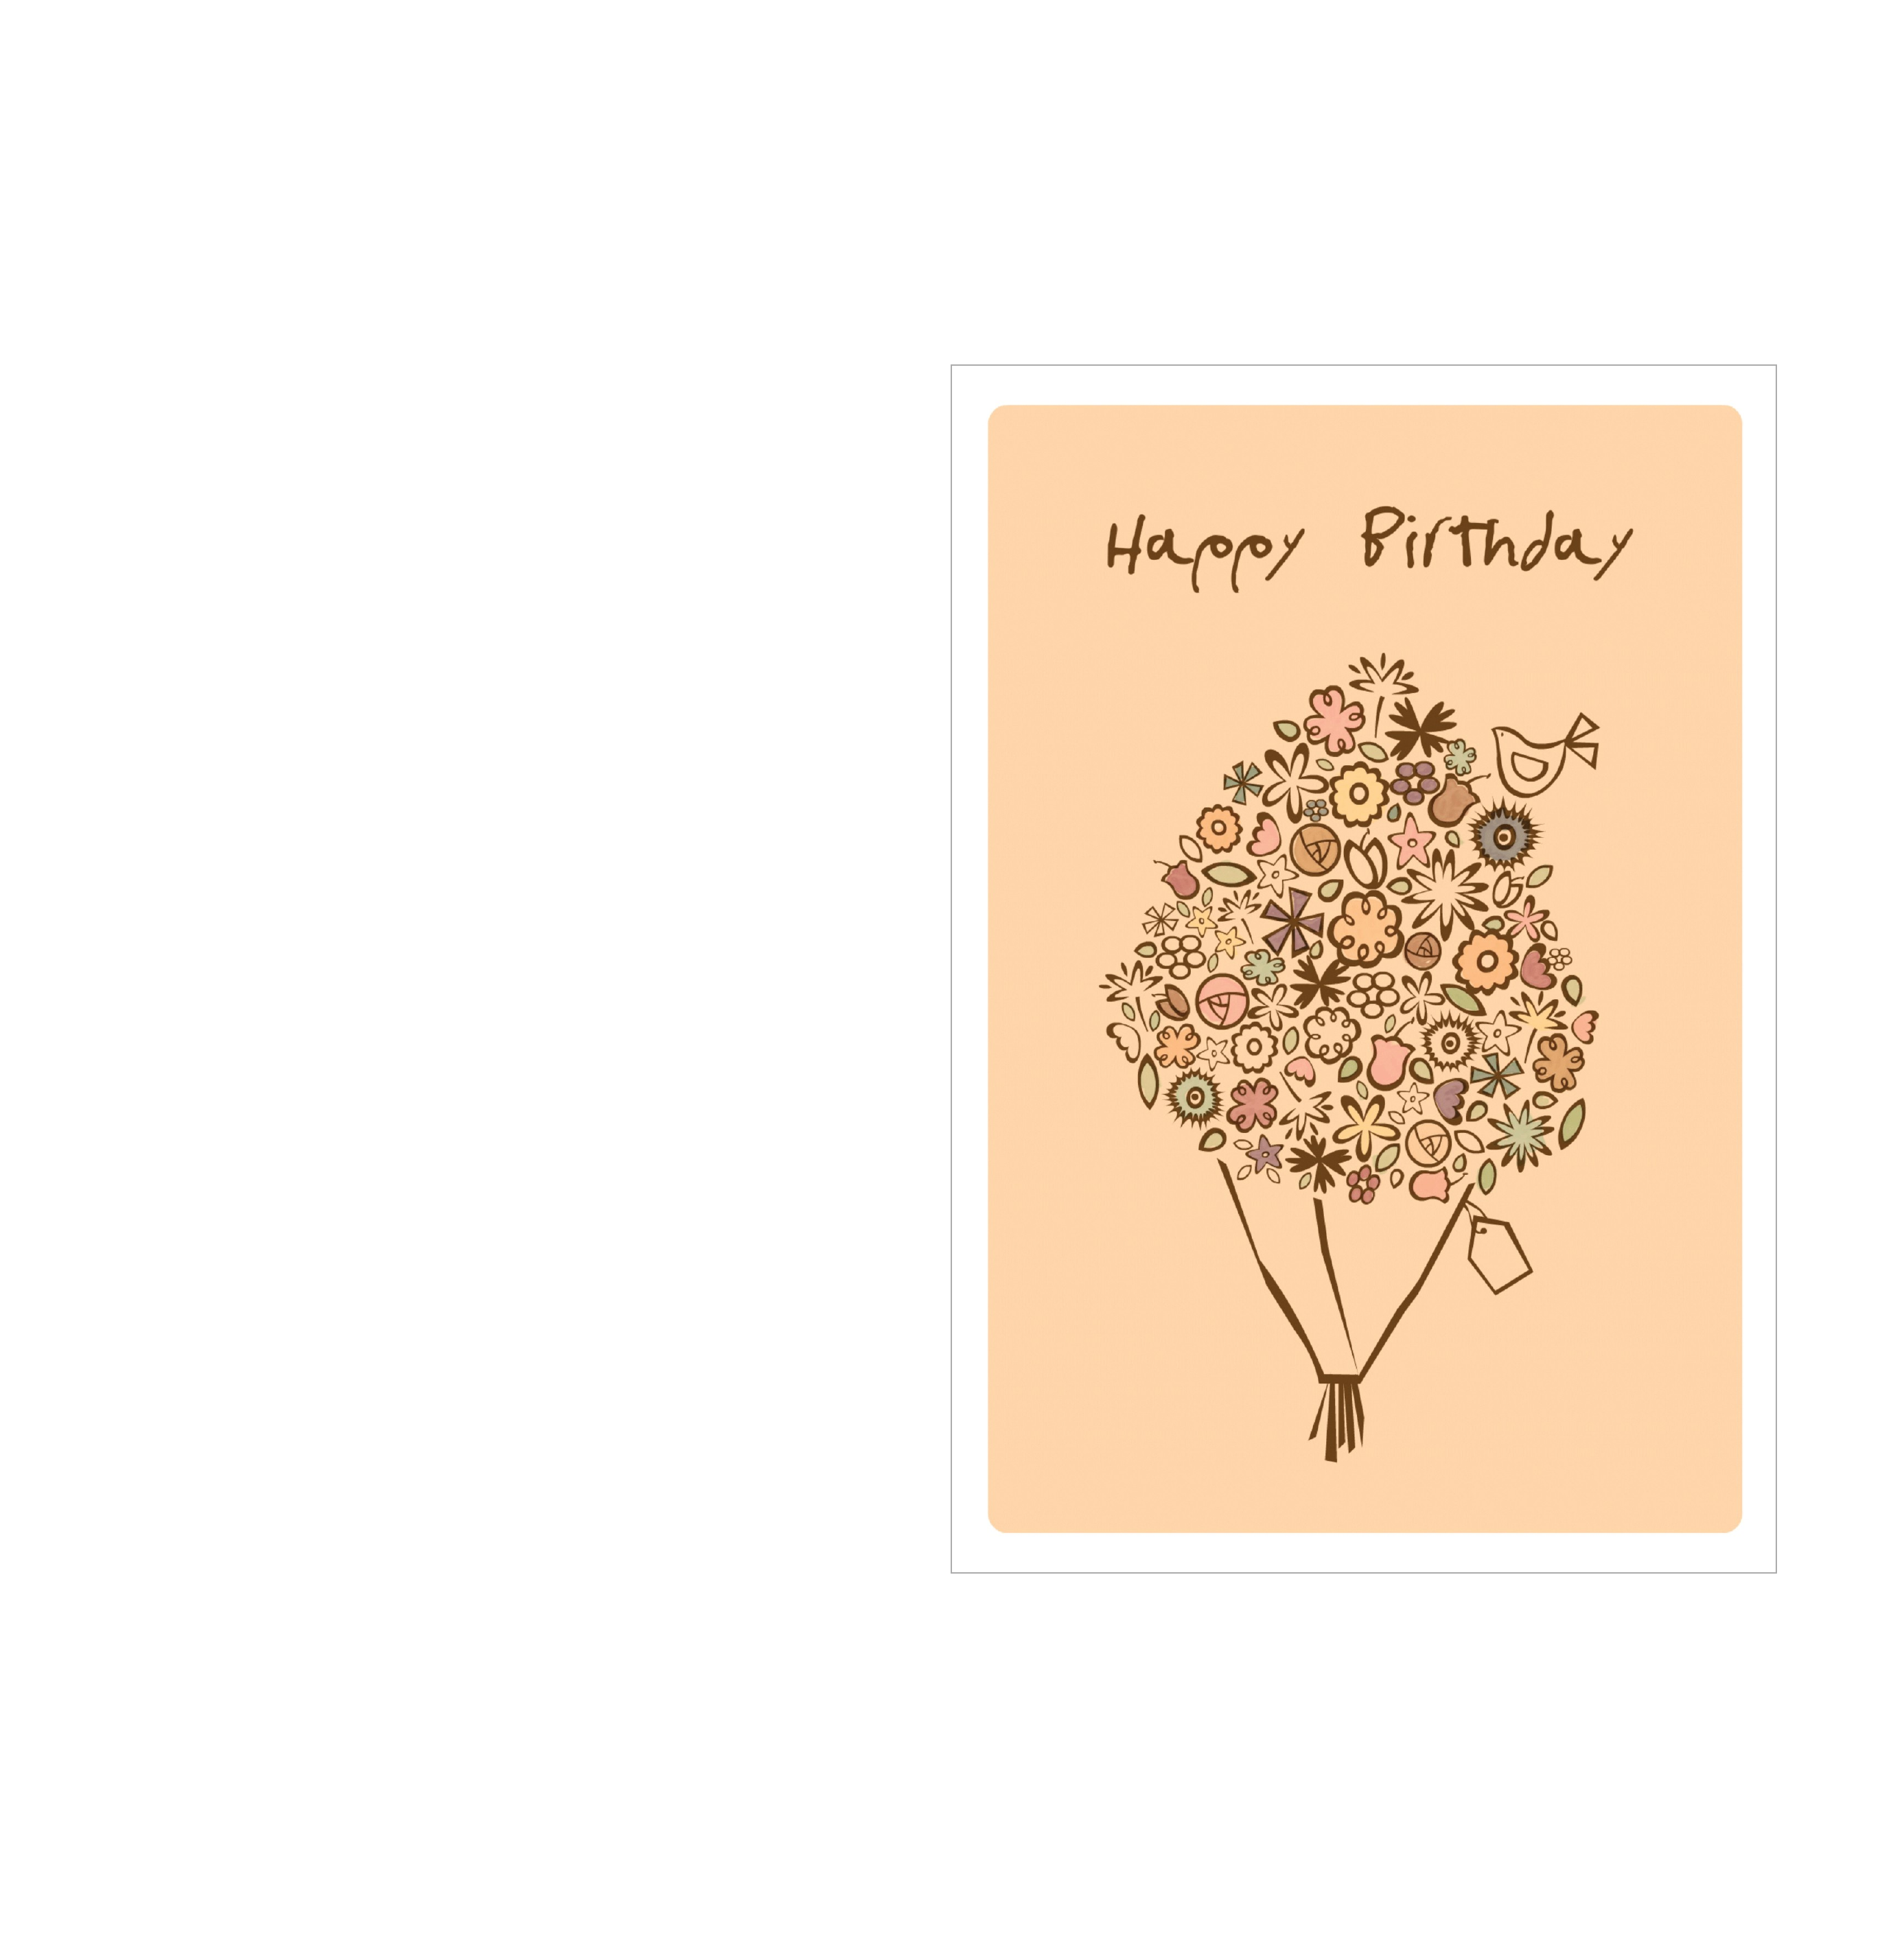 Birthday card template happy birthday bouquet free download bookmarktalkfo Image collections